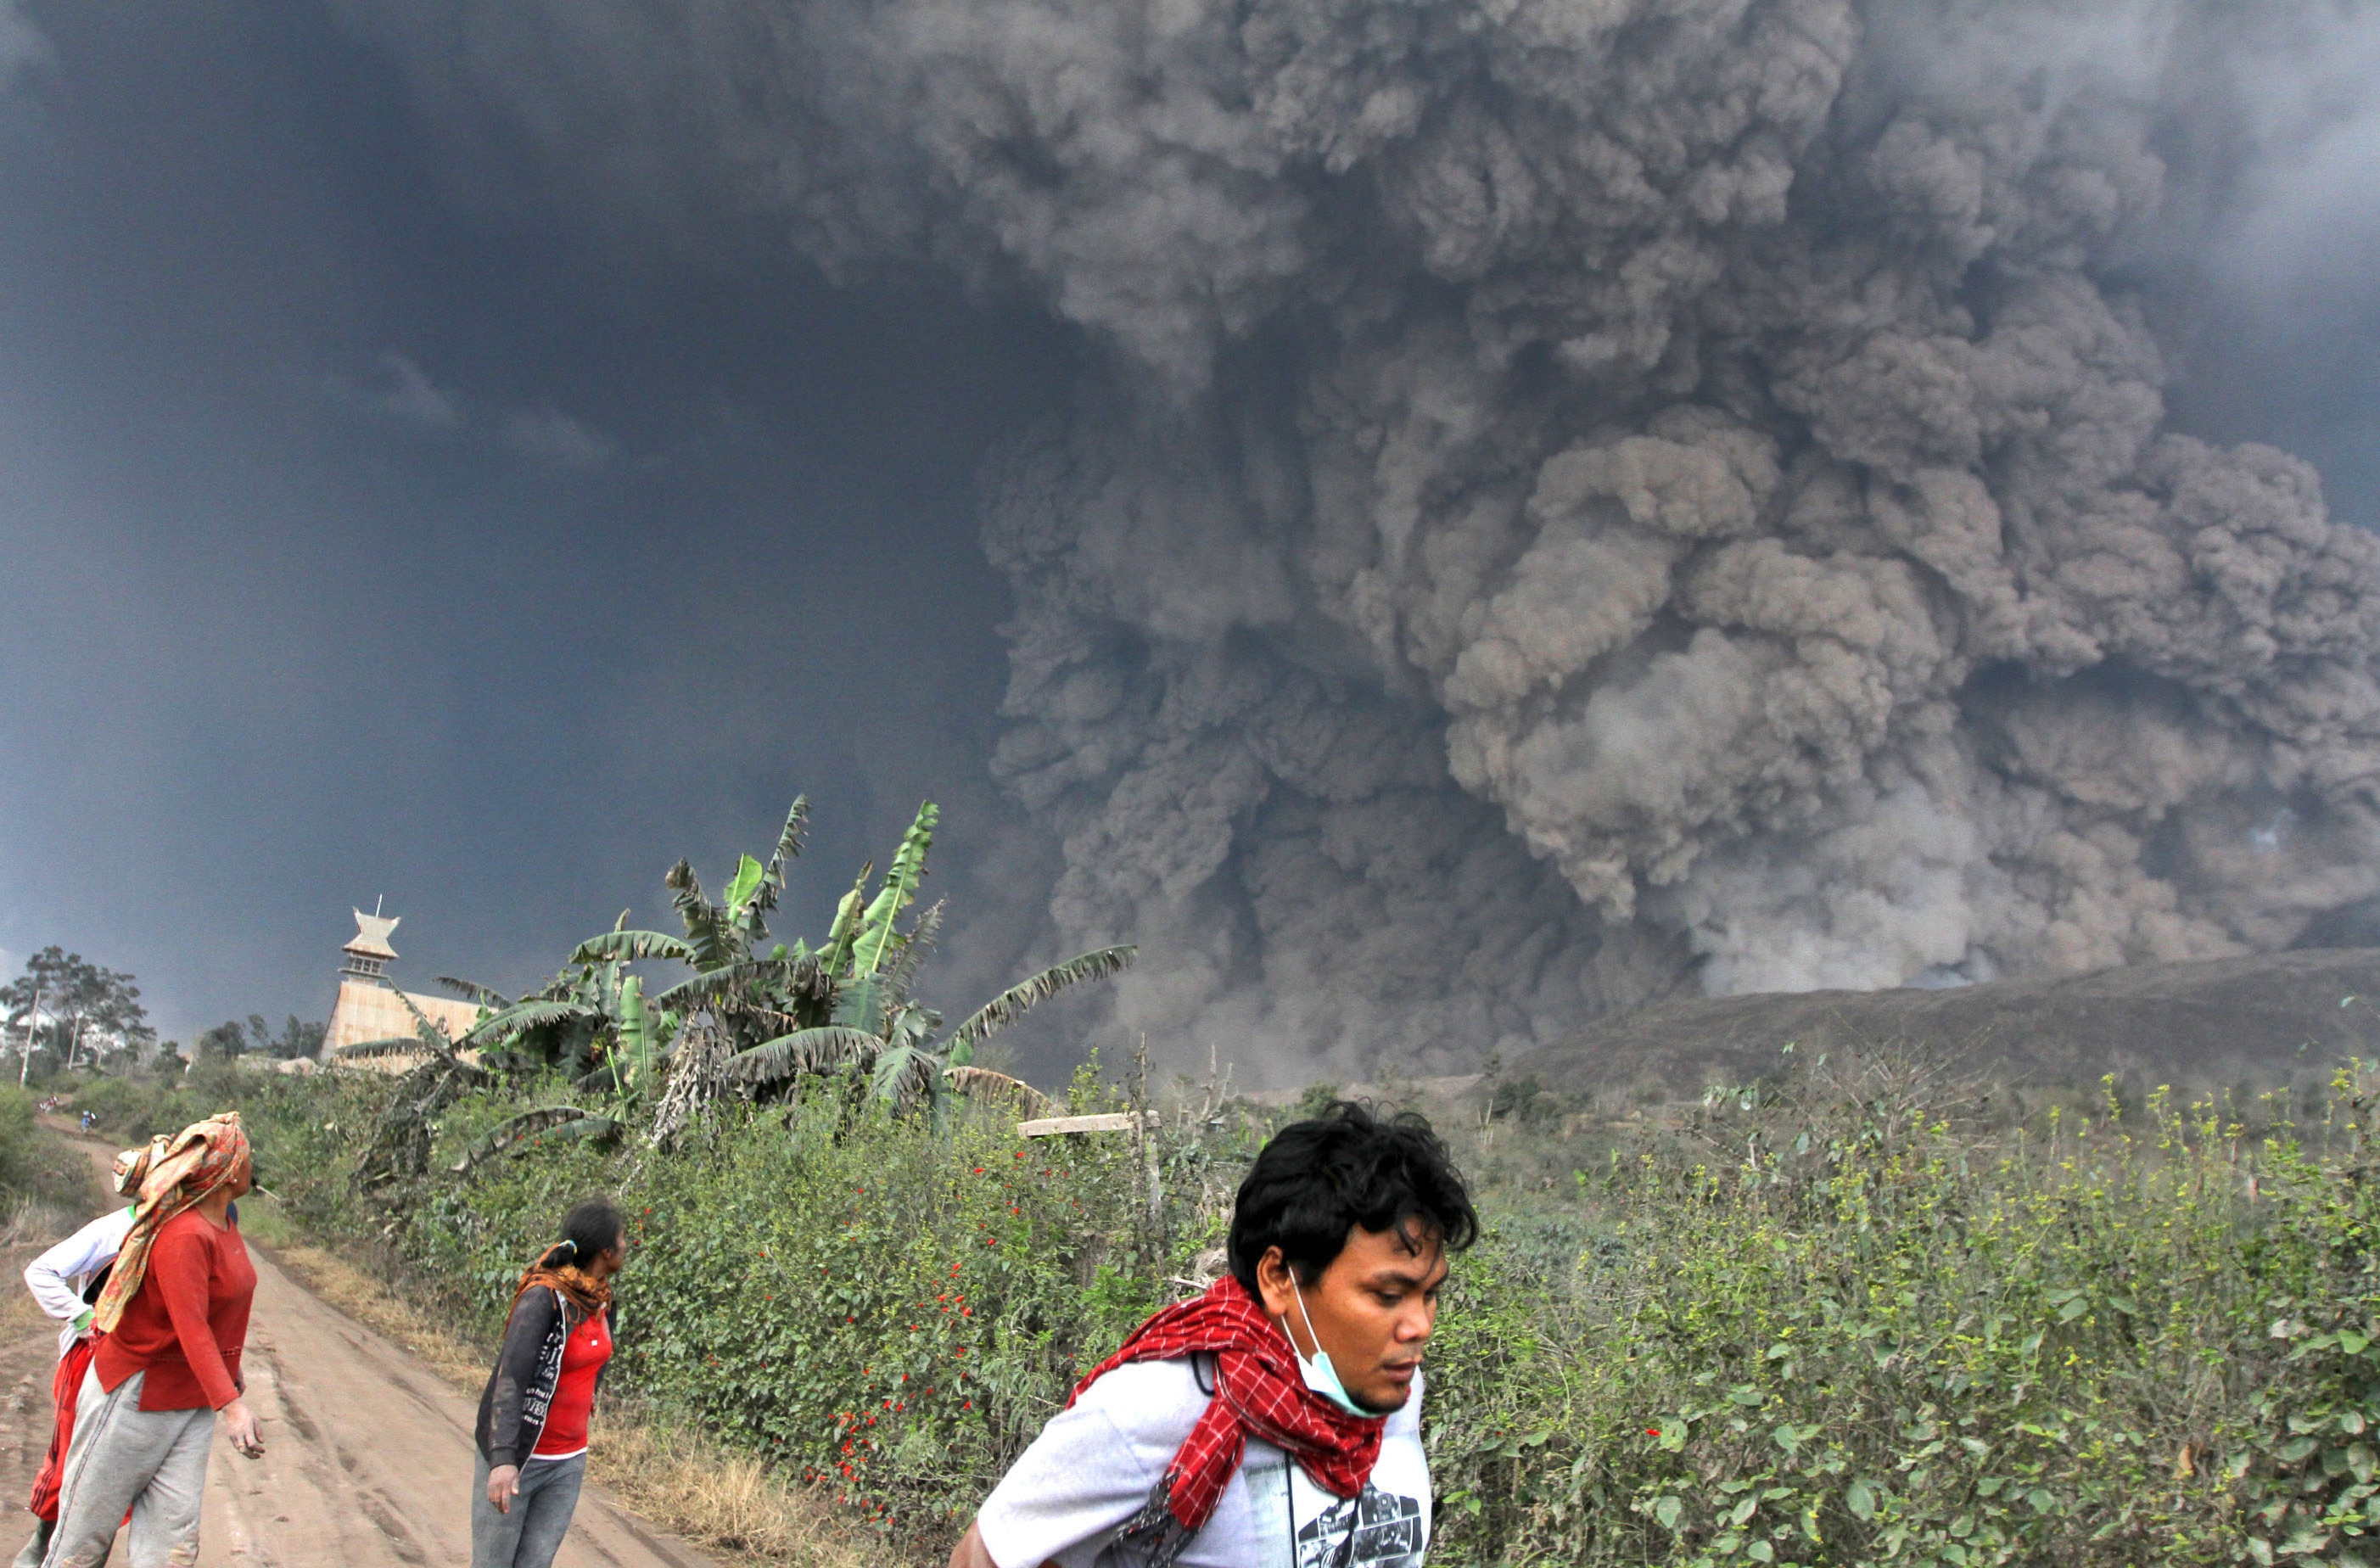 Villagers and a journalist prepare to flee as Mount Sinabung releases pyroclastic flows during an eruption in Namantaran, North Sumatra, Indonesia, on Saturday. The volcano, dormant for 400 years, erupted in August 2010.